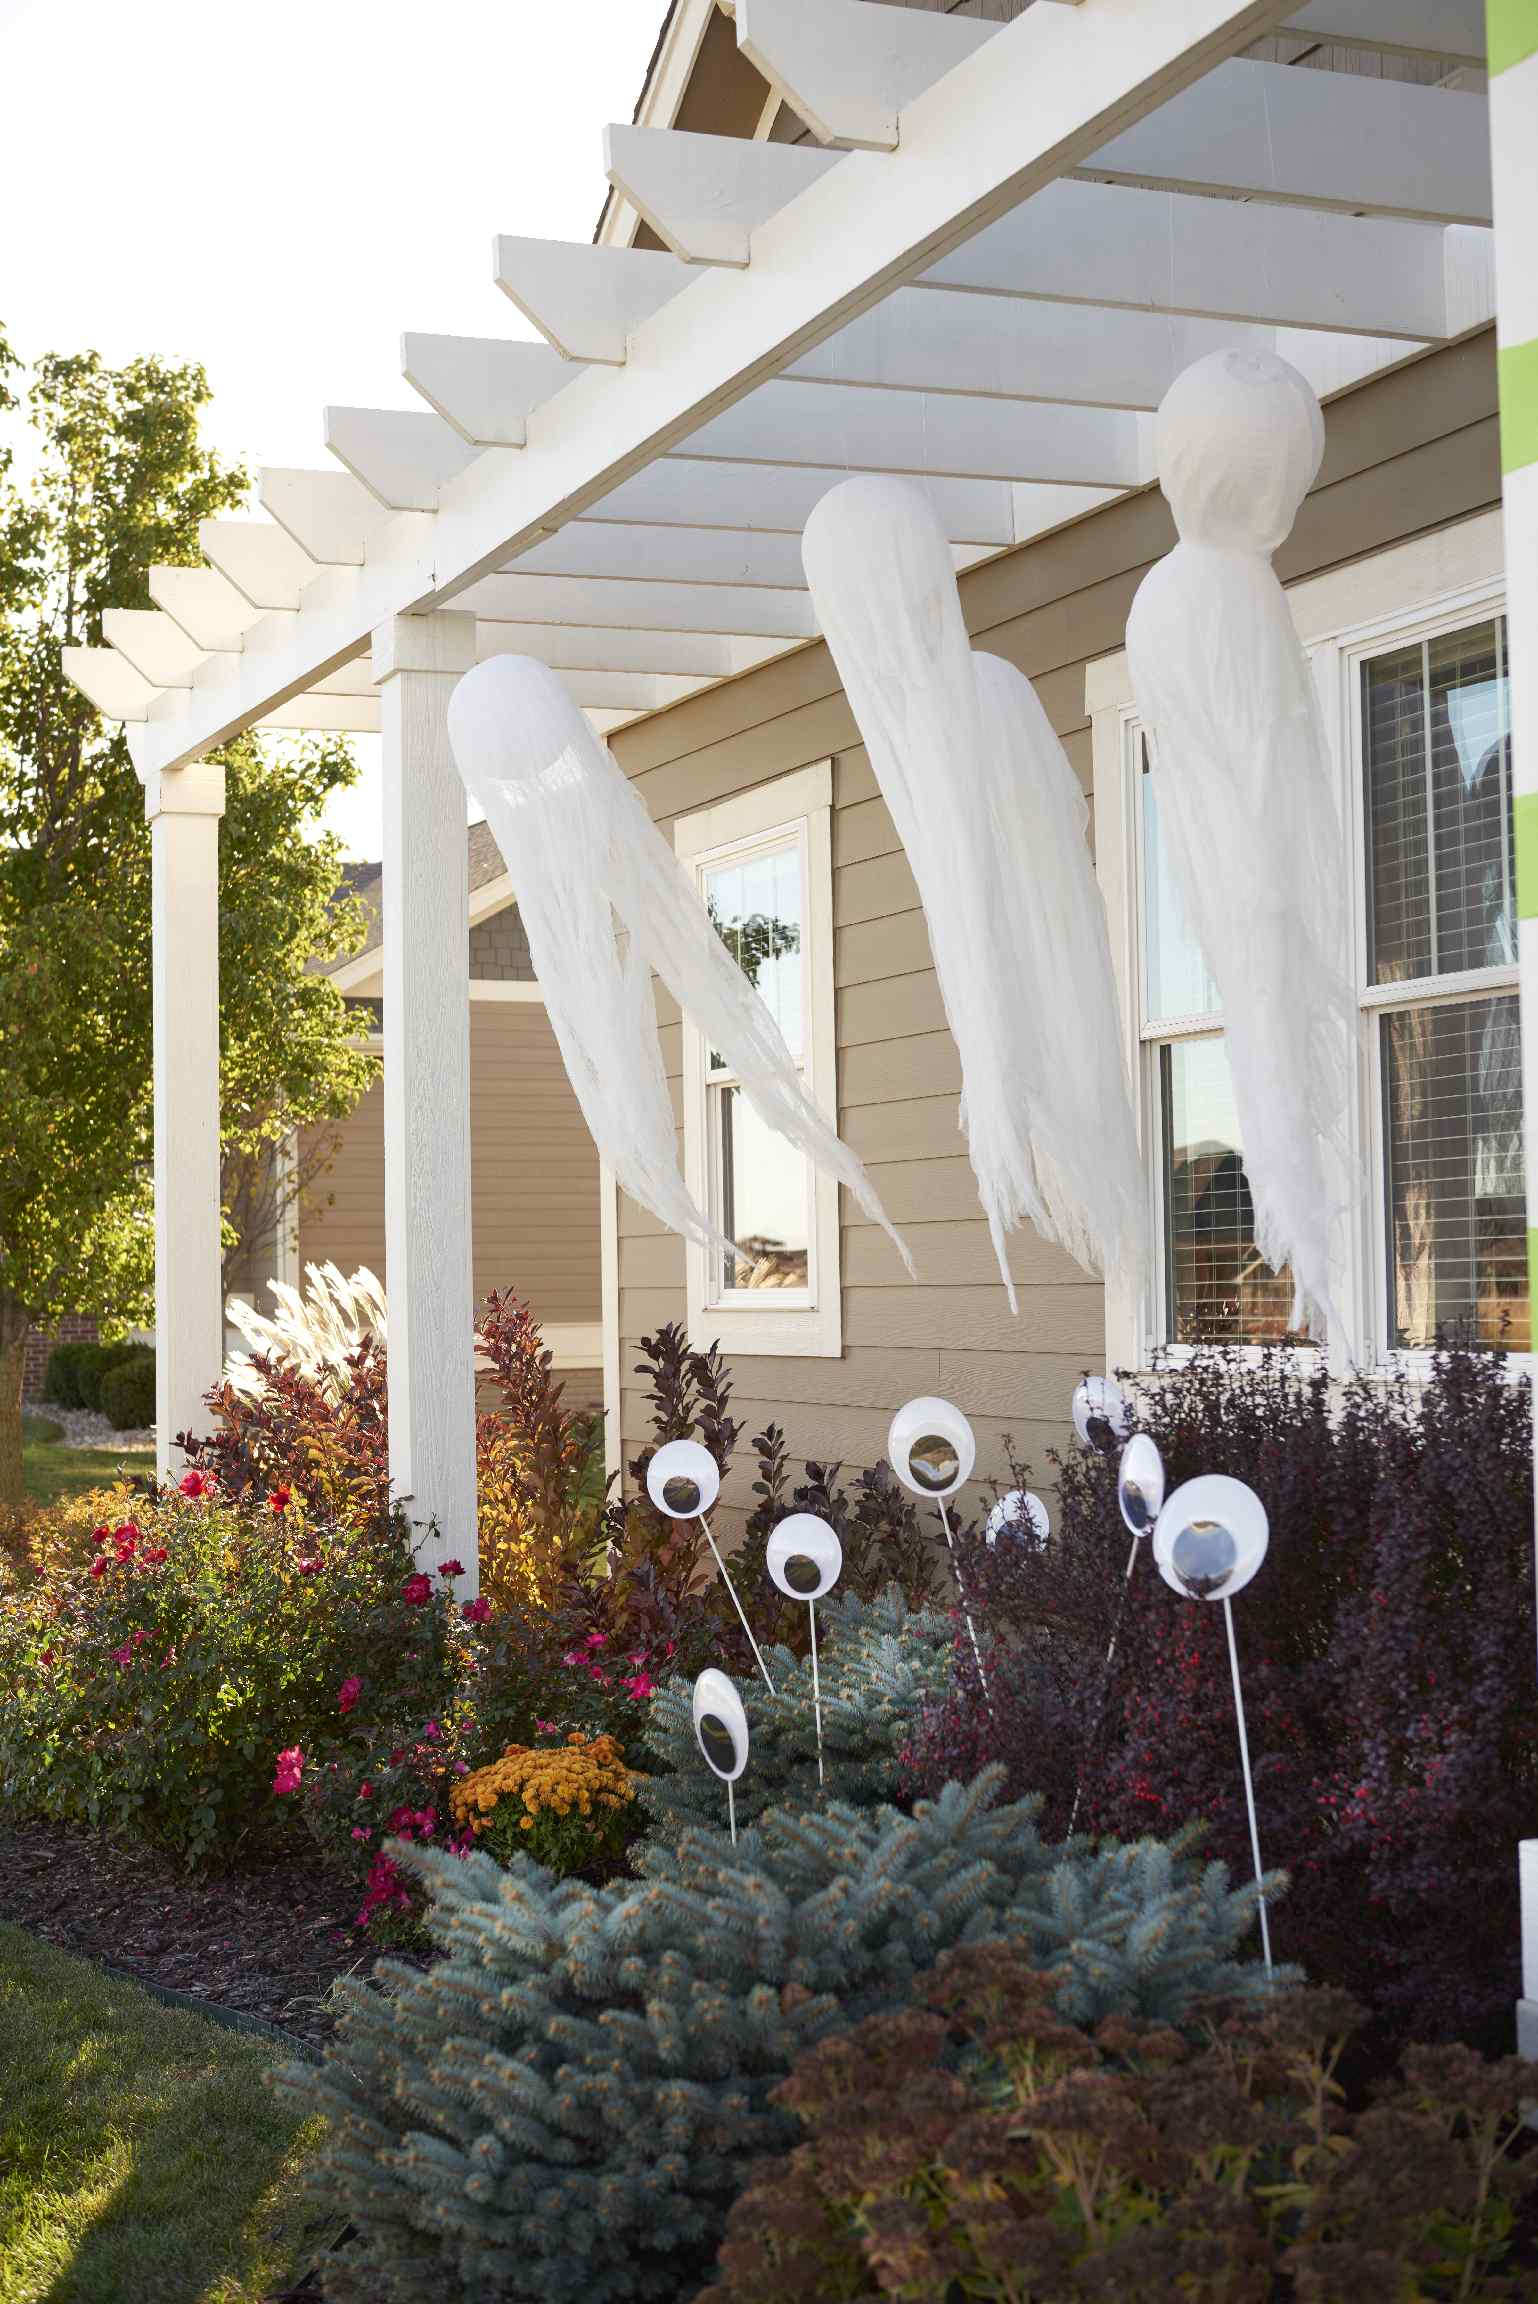 Exterior of a white house at daylight with three cloth ghosts hanging from the front porch